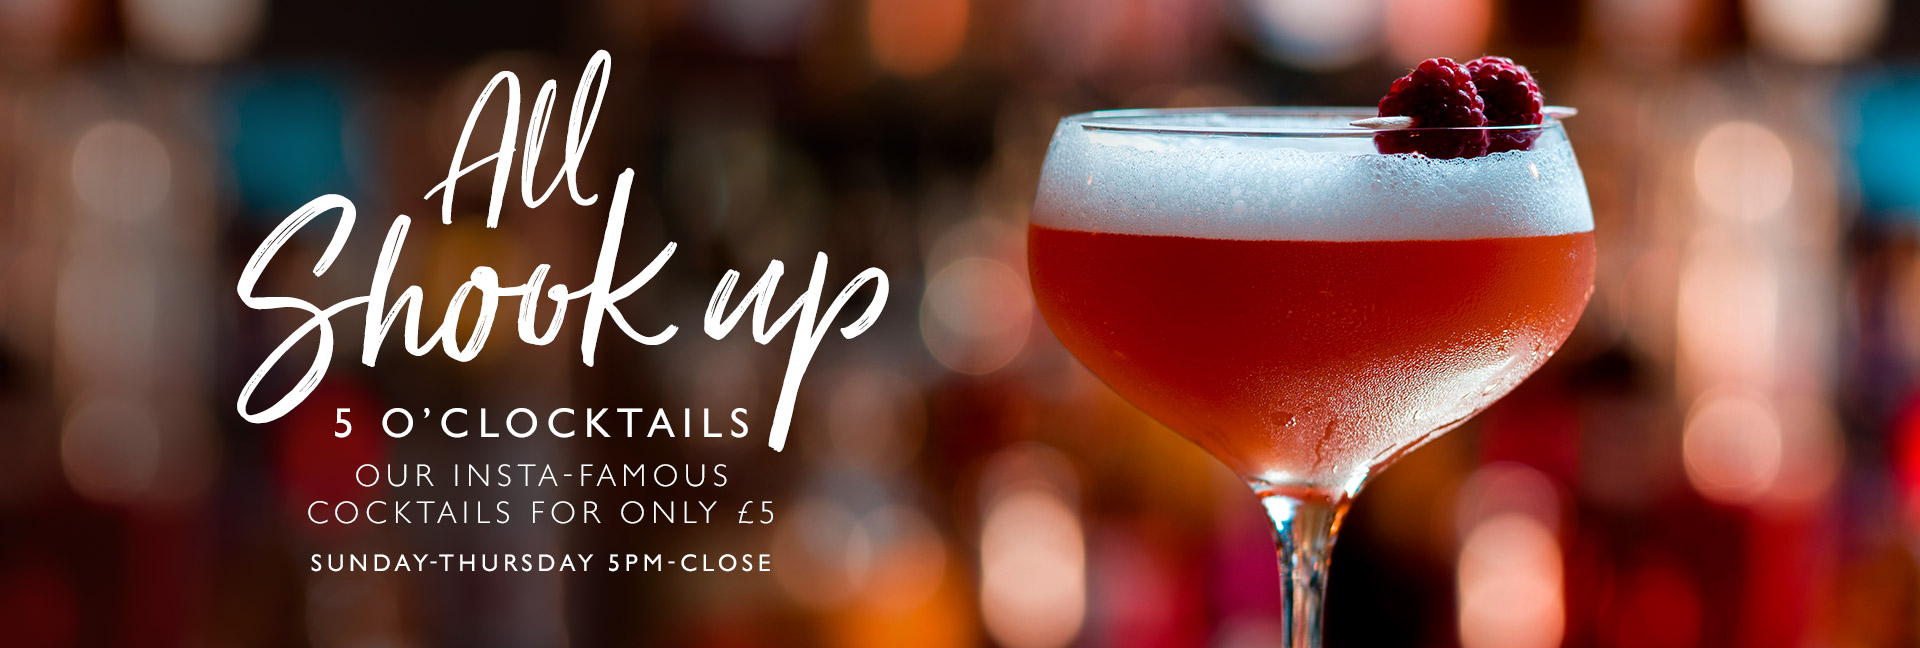 5 O'clocktails at All Bar One Harrogate - Book now